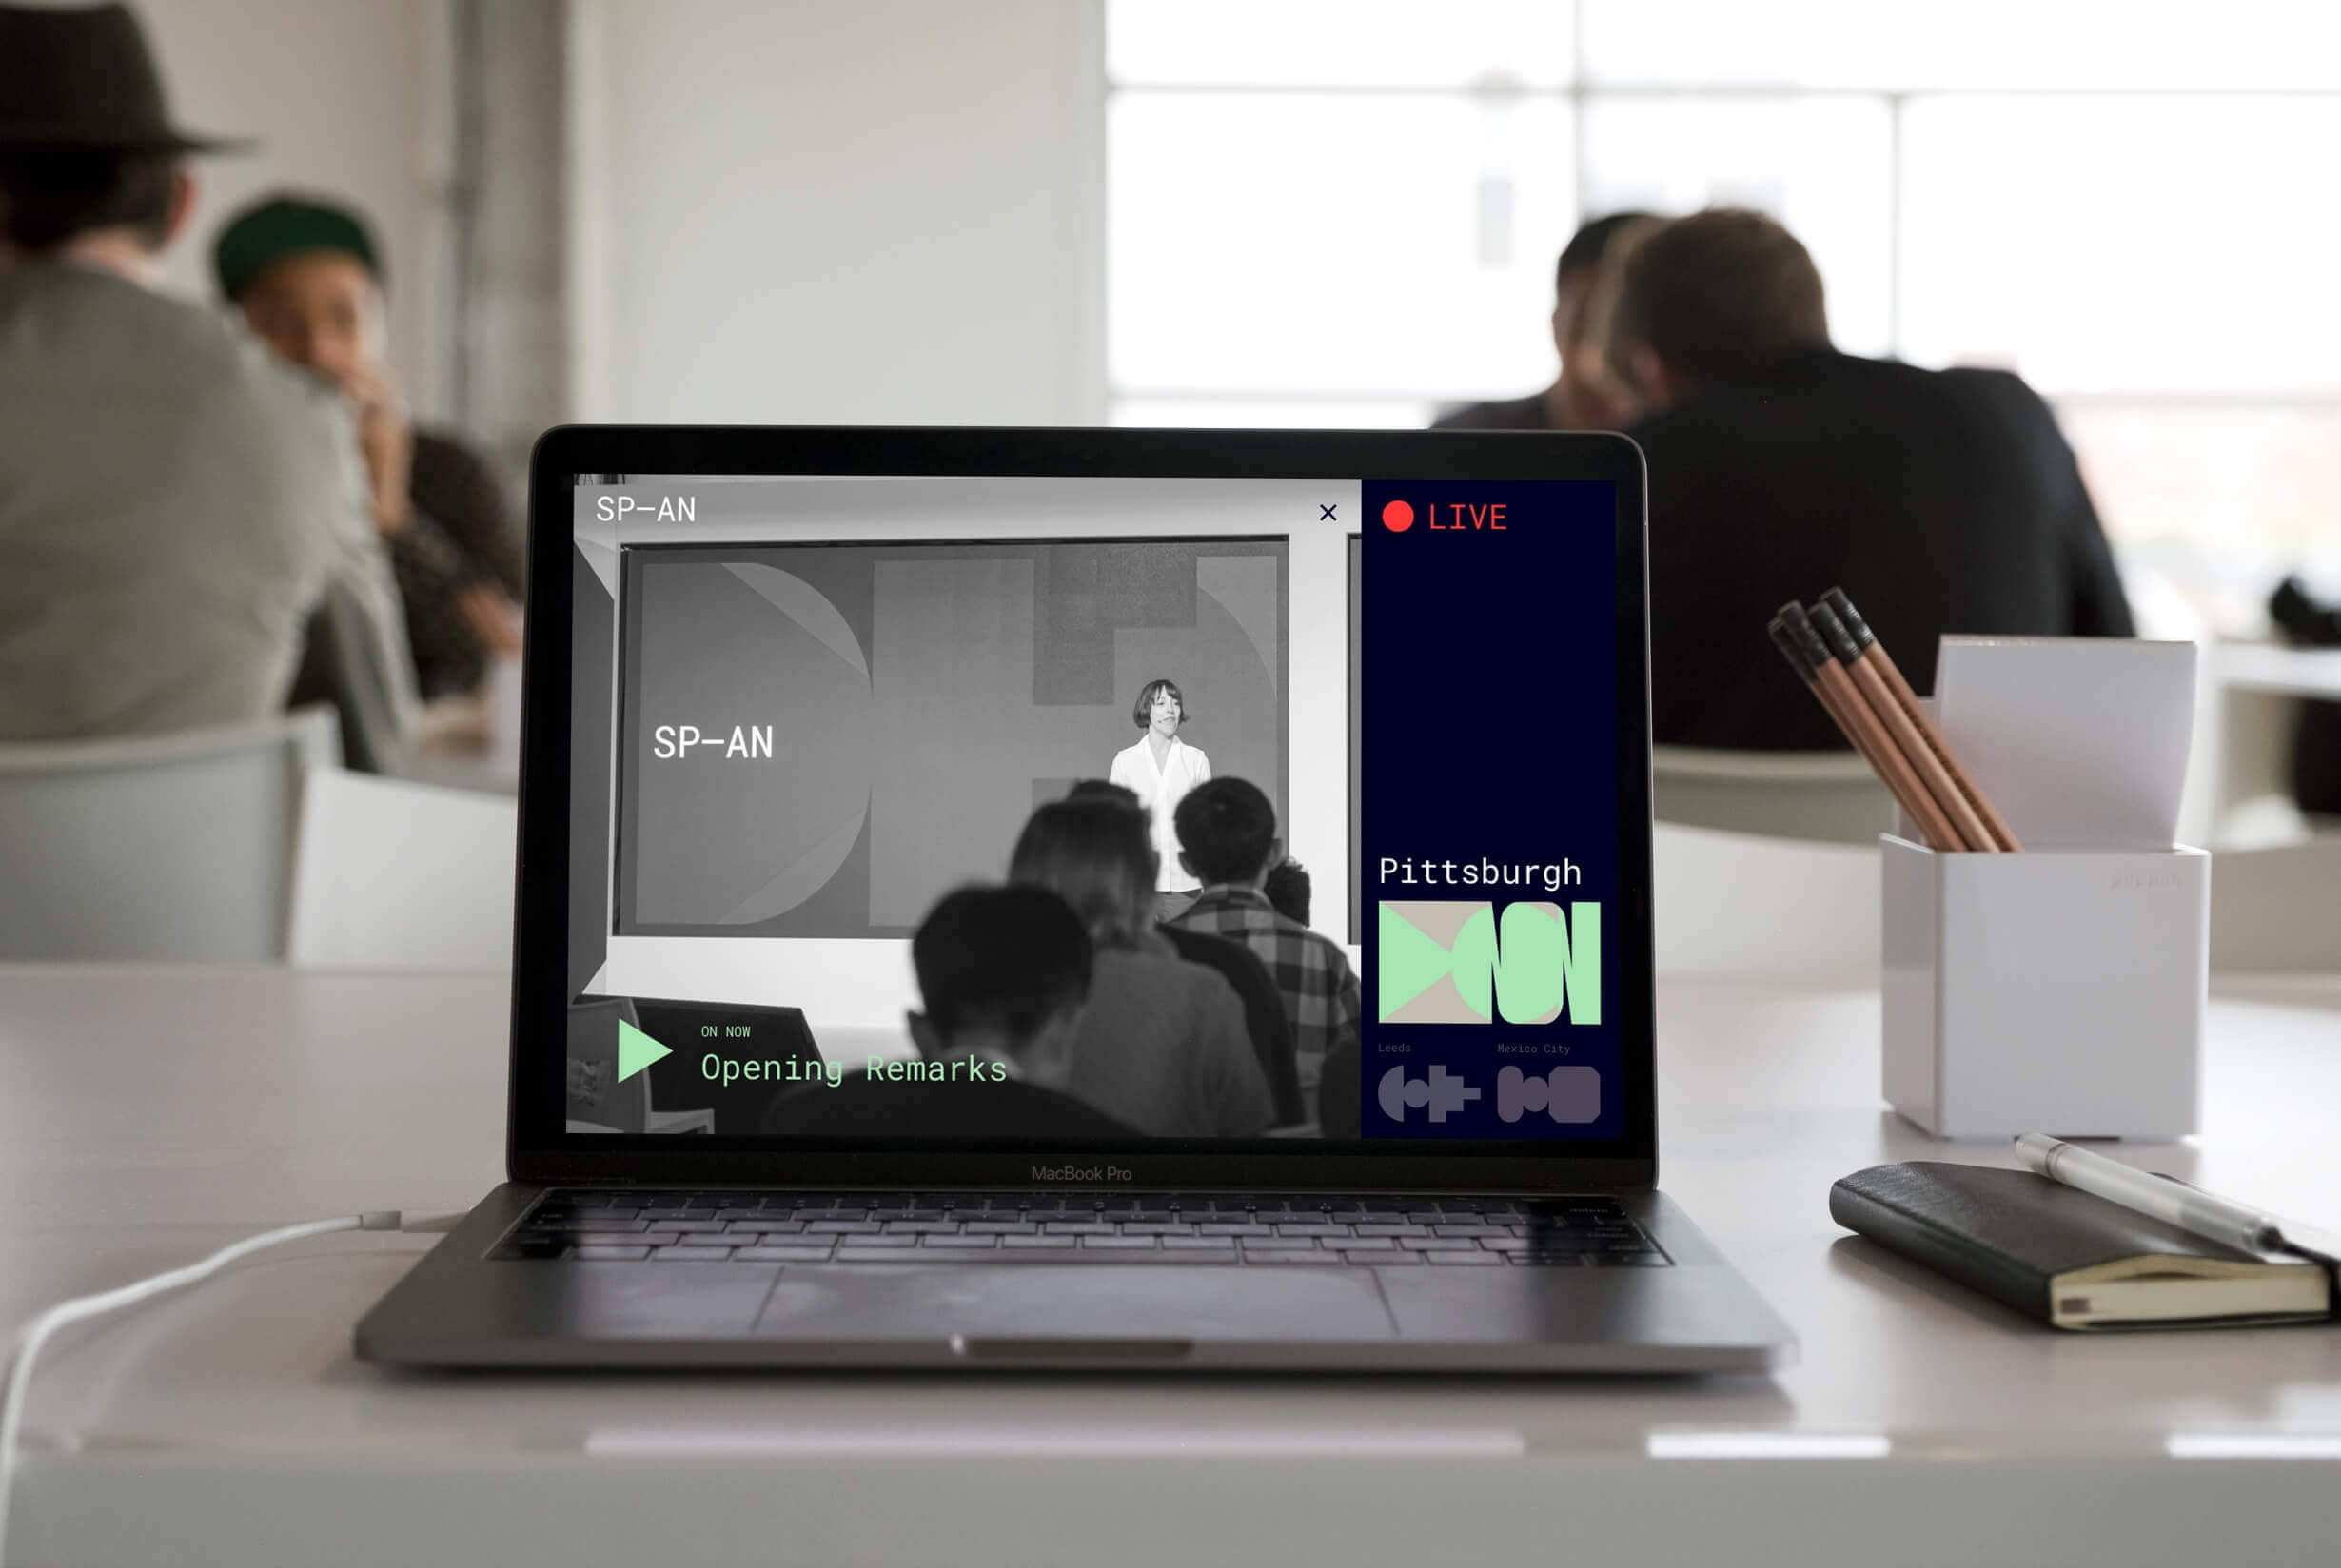 Photo of the Google Span live stream on a laptop